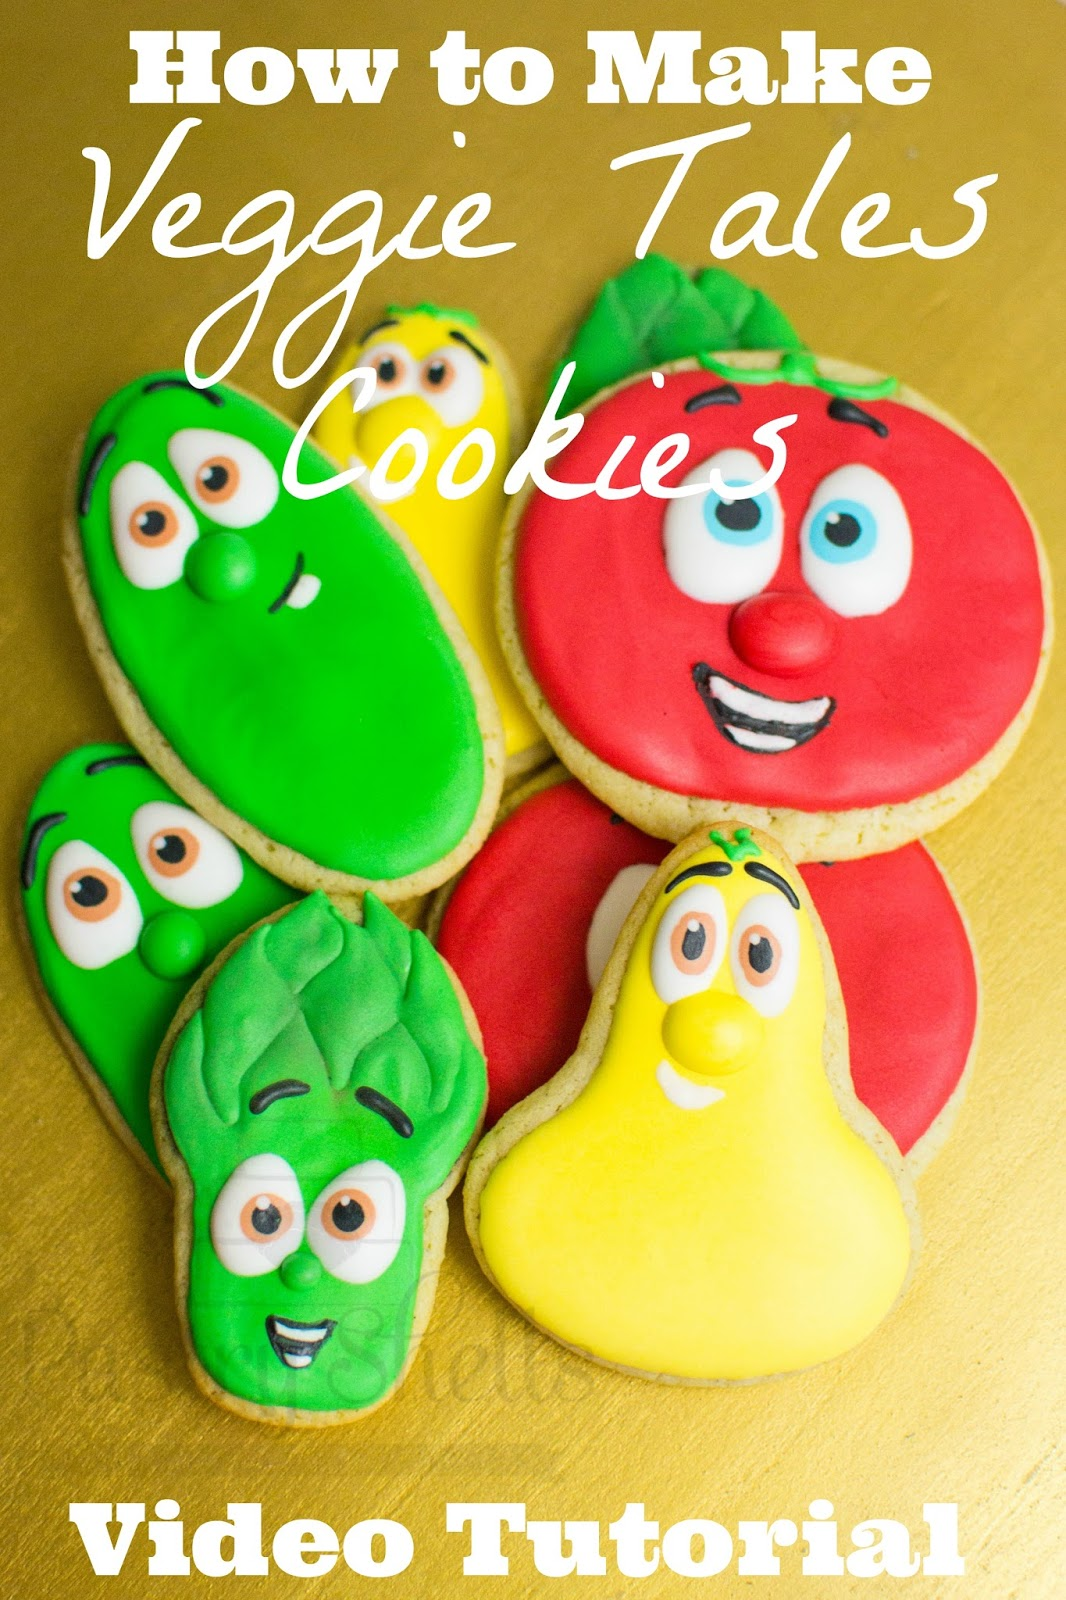 Try your hands at making these iconic characters.  This sugar cookie tutorial is made for intermediate decorators.